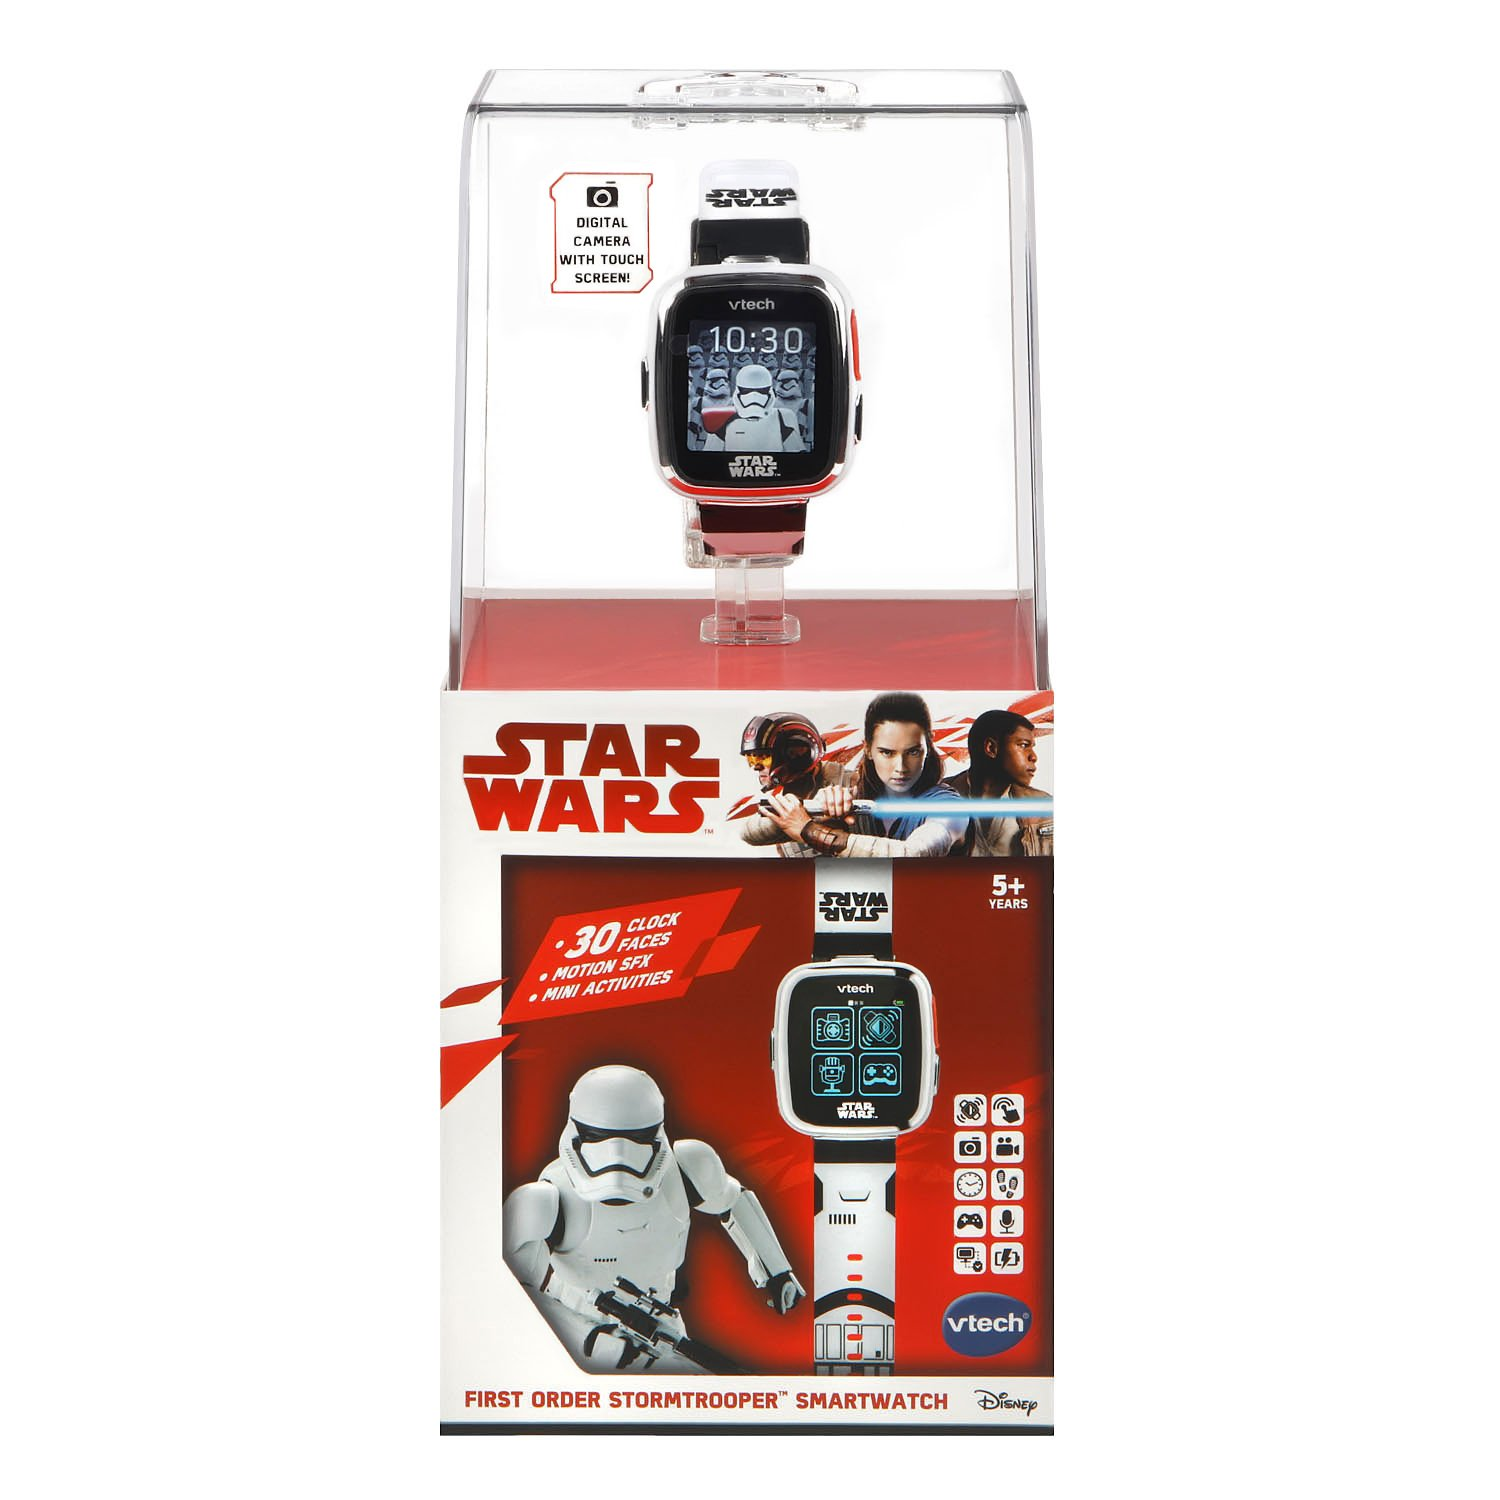 VTech Star Wars First Order Stormtrooper Smartwatch with Camera Amazon Exclusive, White by VTech (Image #7)